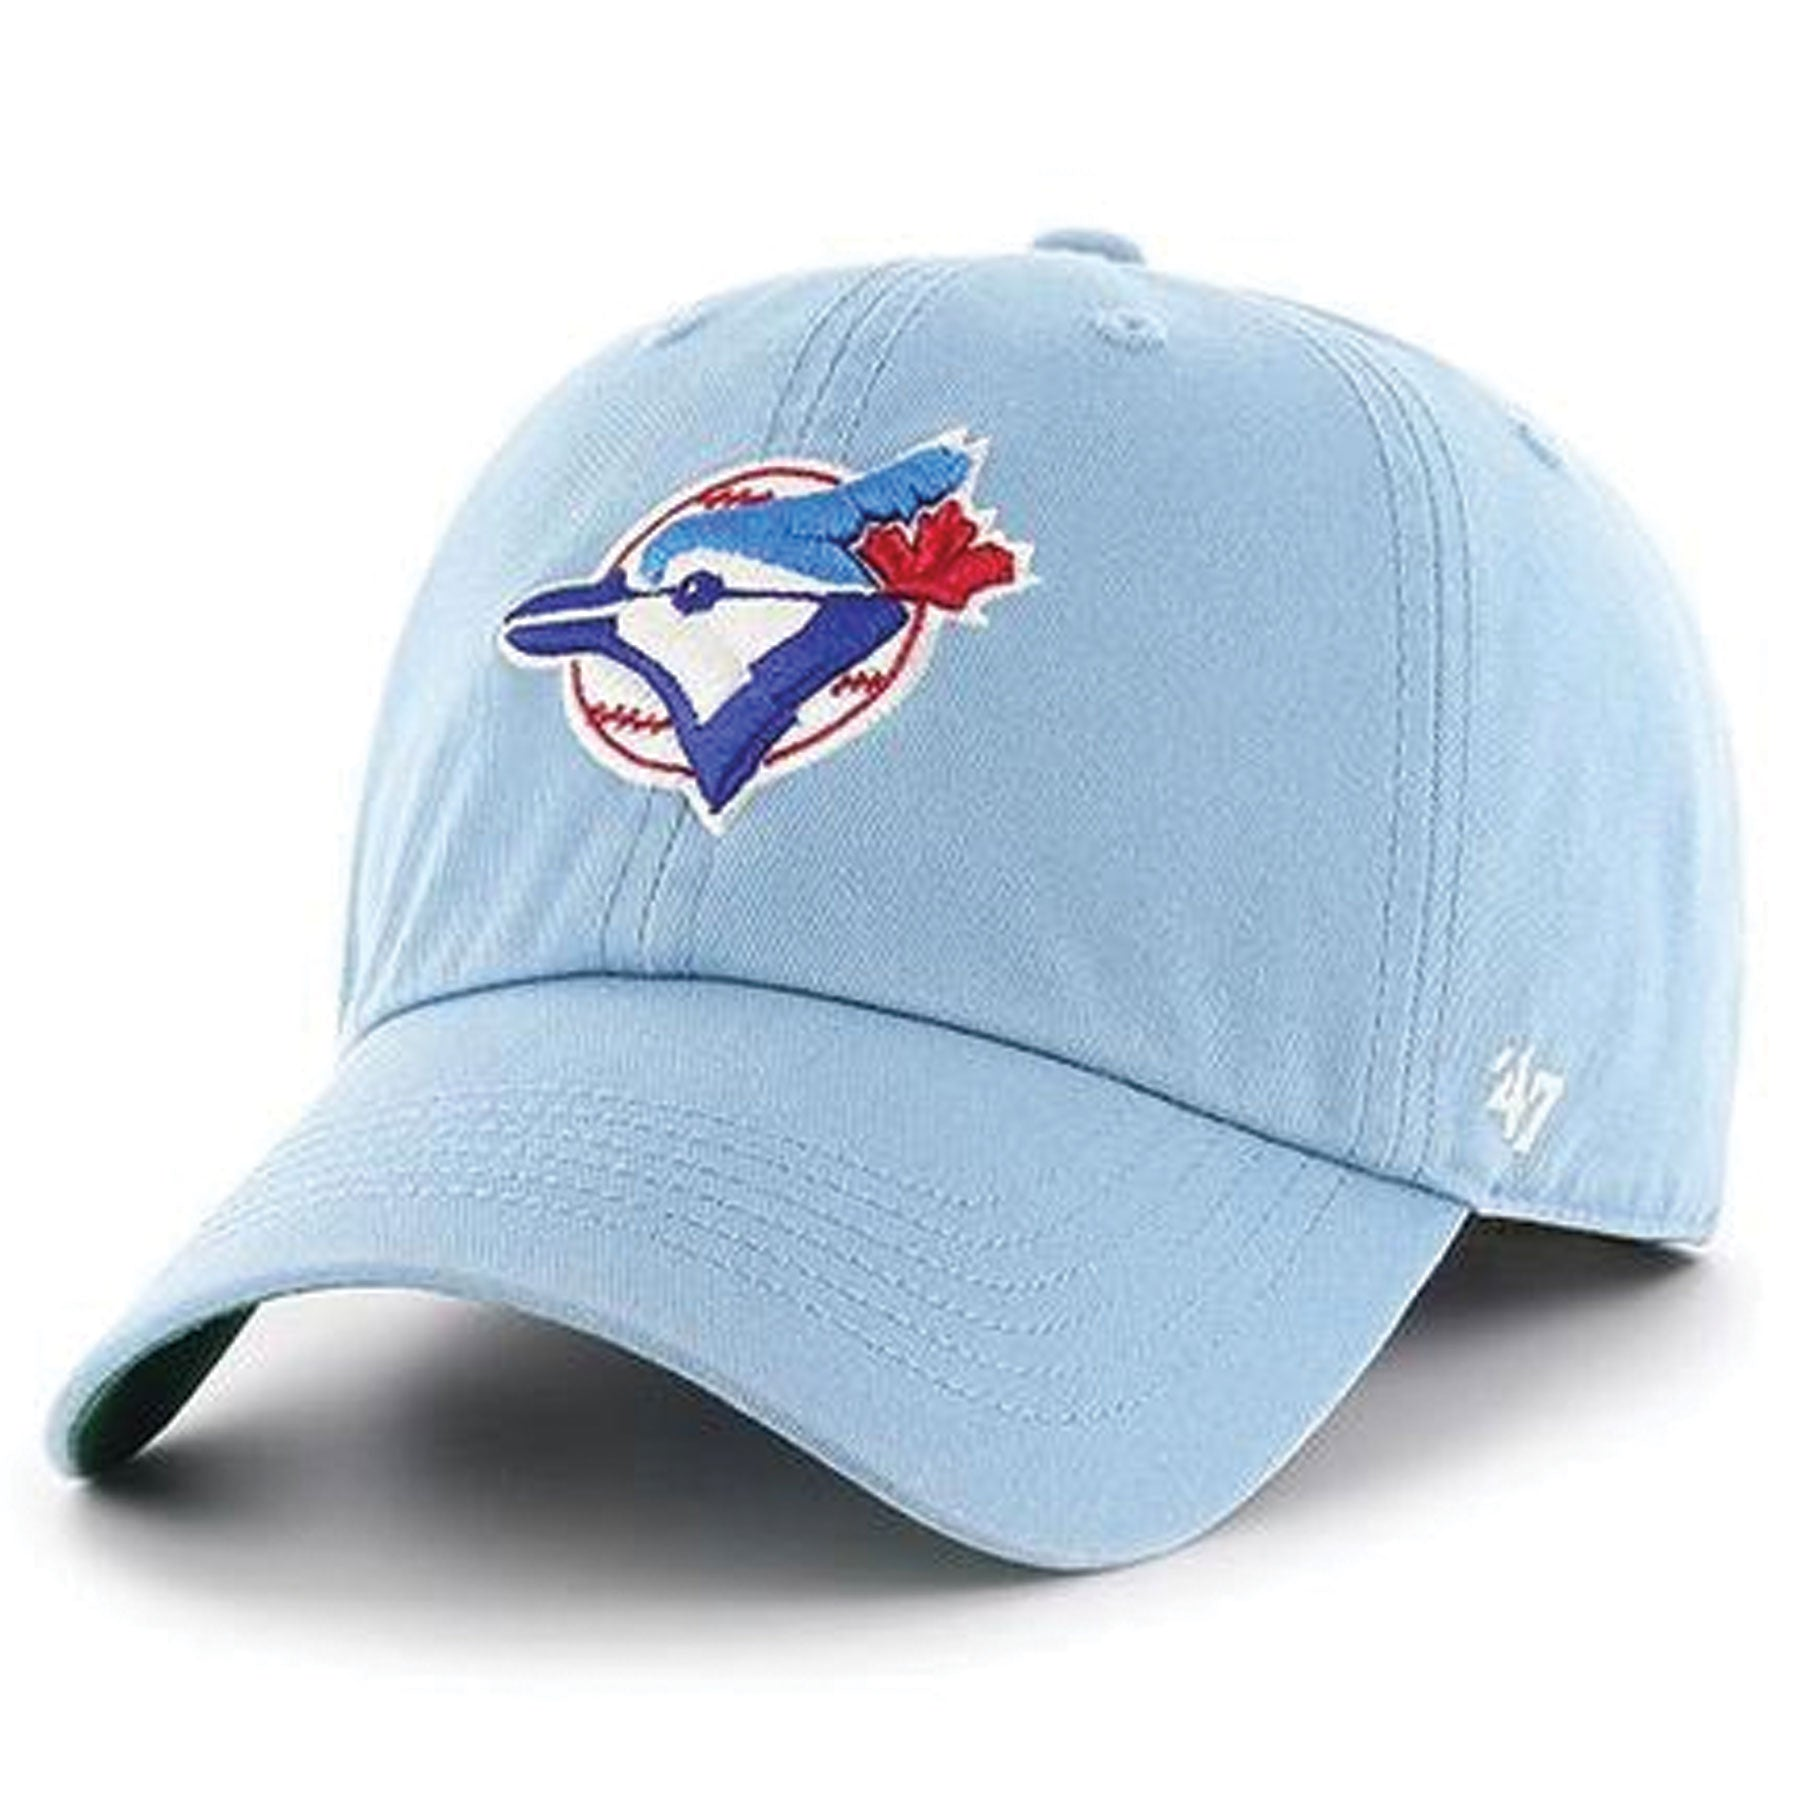 promo code 2cfde d129e Toronto Blue Jays Clean Up Vintage Retro Light Blue Dad Hat